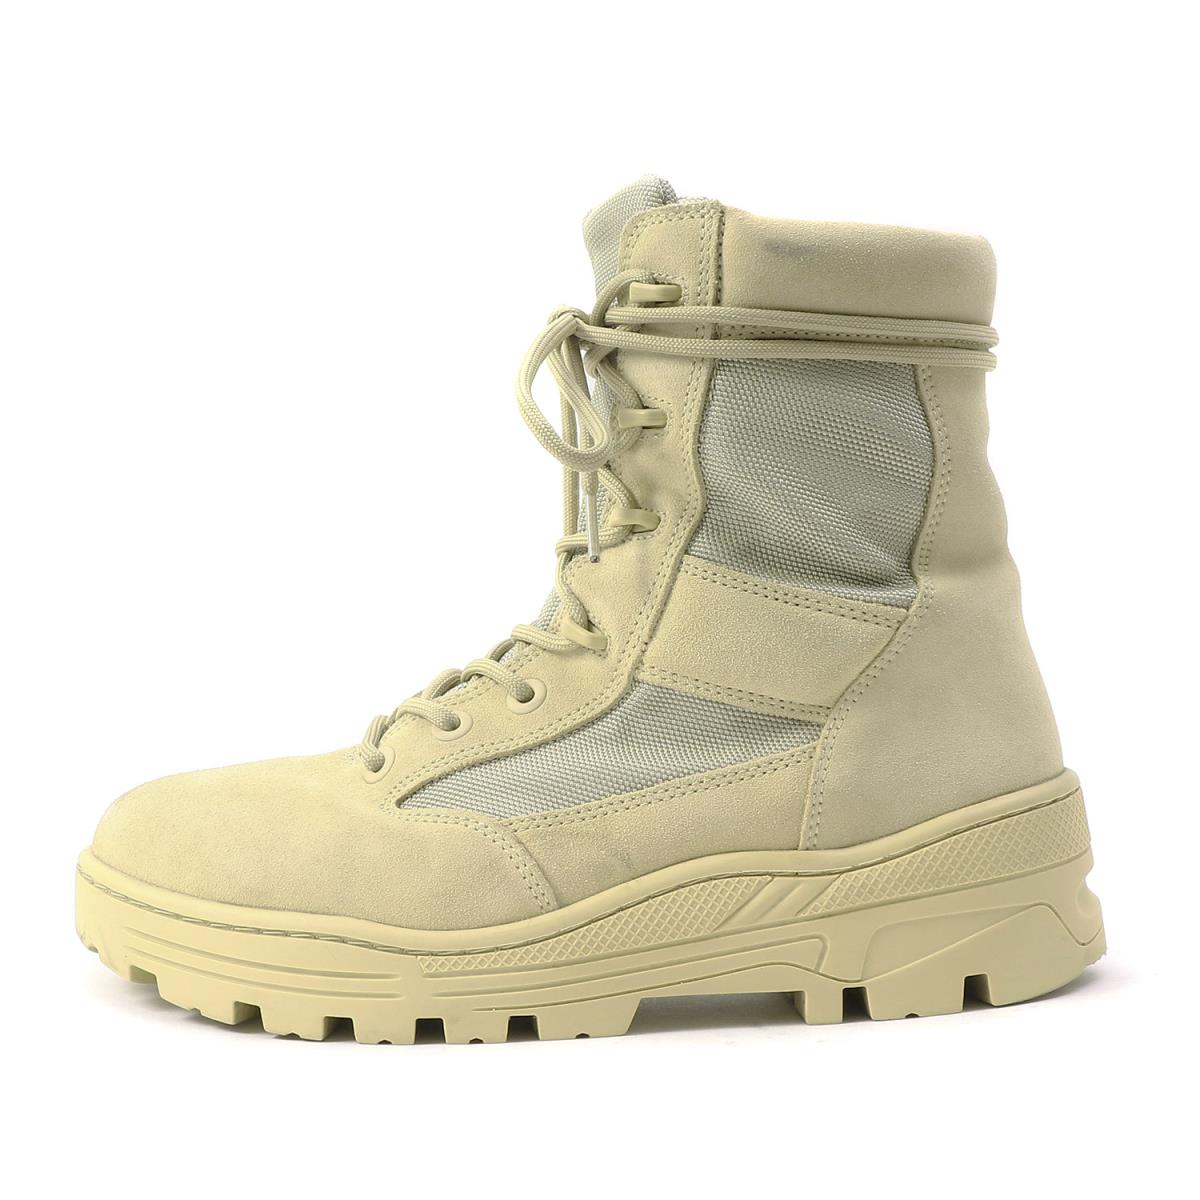 625828b76c349 YEEZY (easy) 17A W combat boot (Season 4   SAND NYLON AND SUEDE COMBAT BOOT)  sand 42